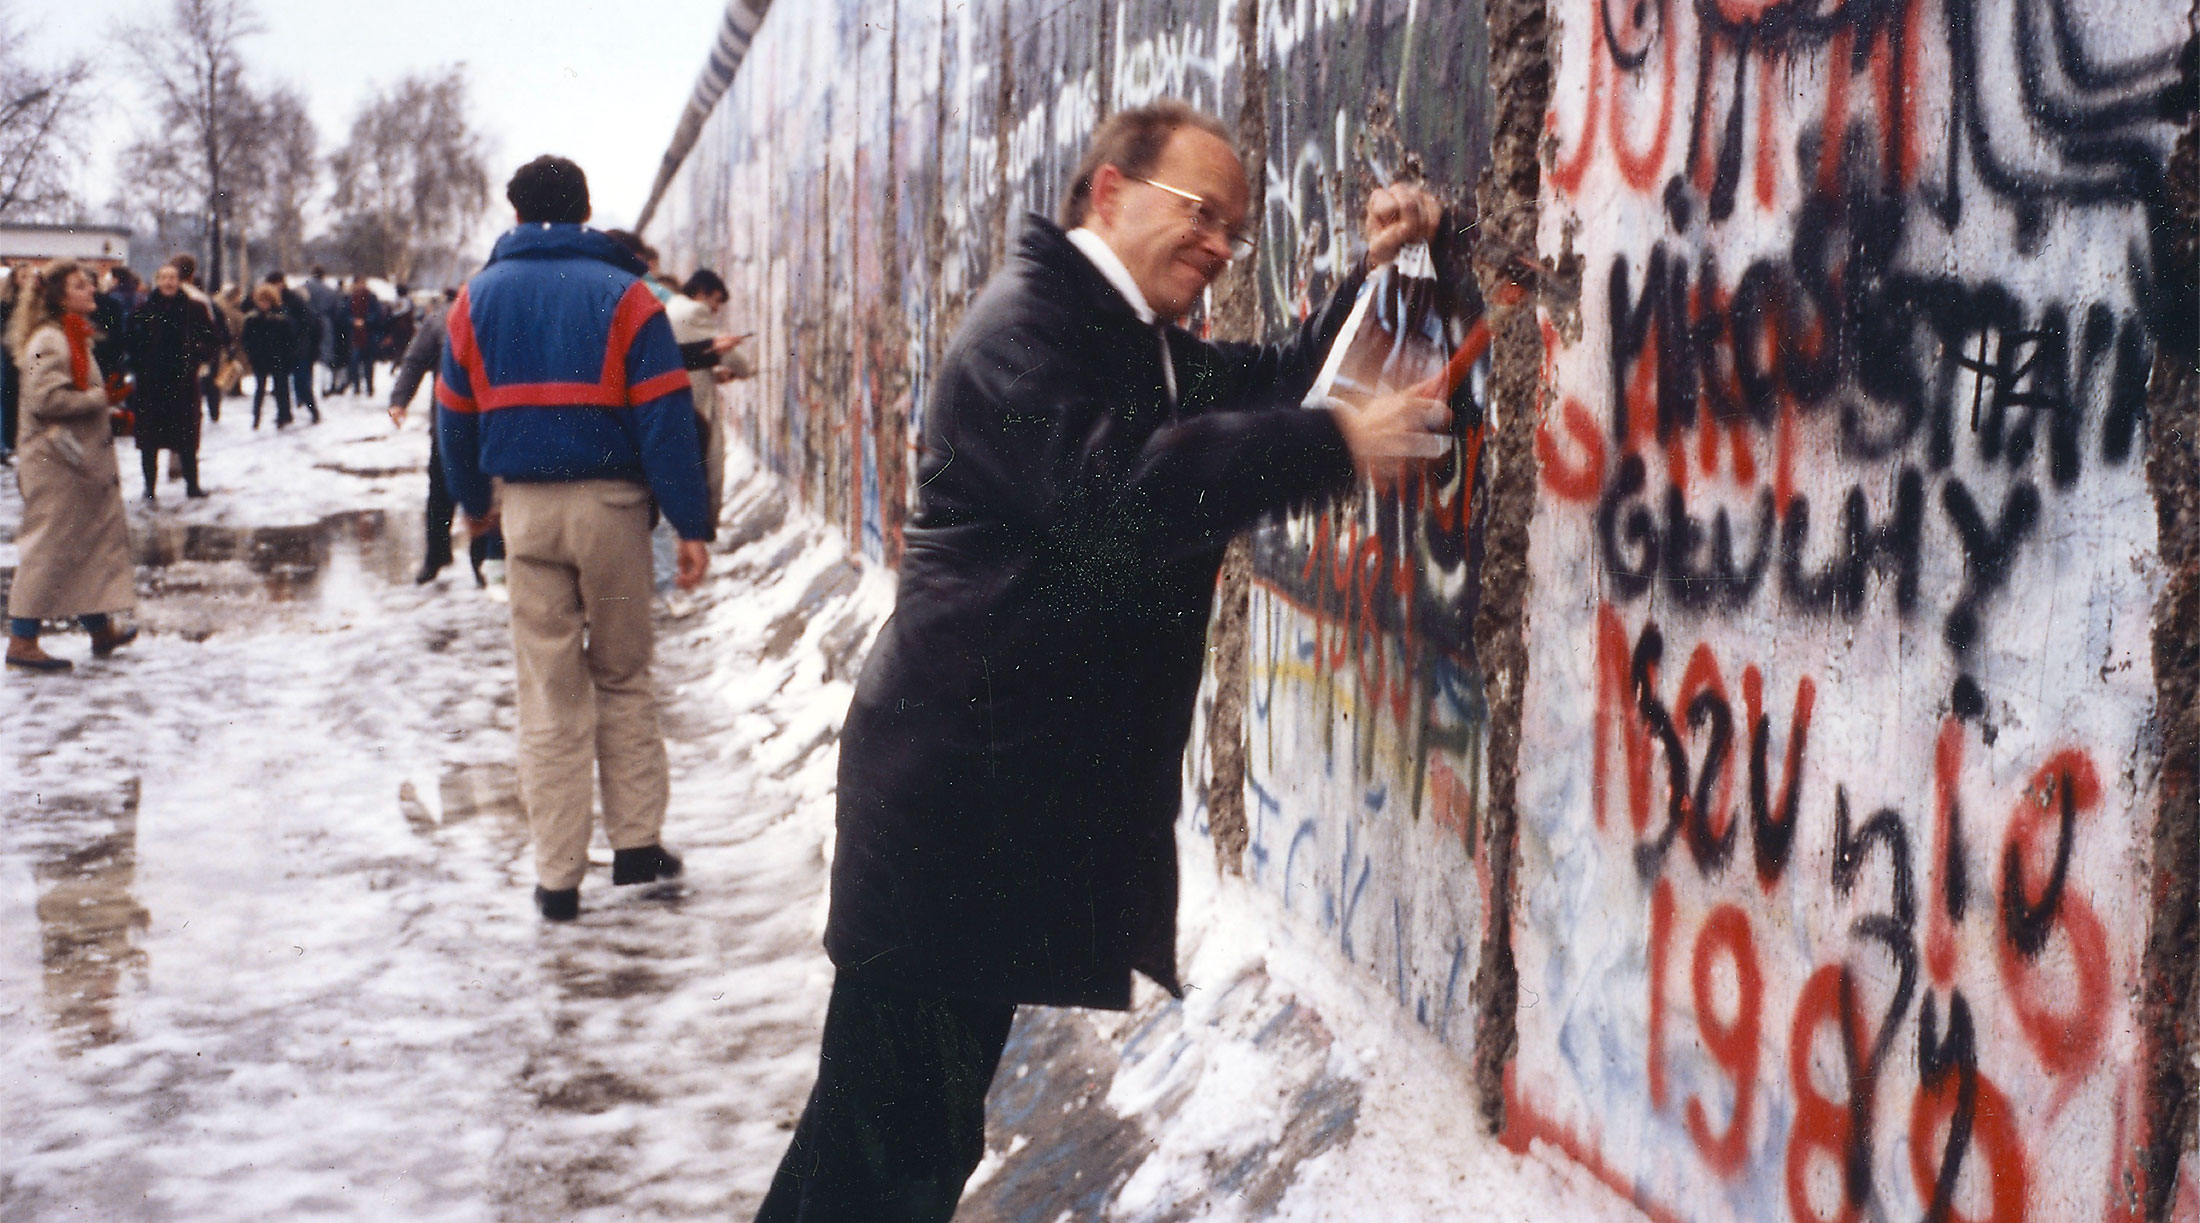 Erik Spiekermann as wallpecker in Winter 1989: When the Wall came down, optimism and audacity soon spread in Berlin, from which FontShop was also infected.